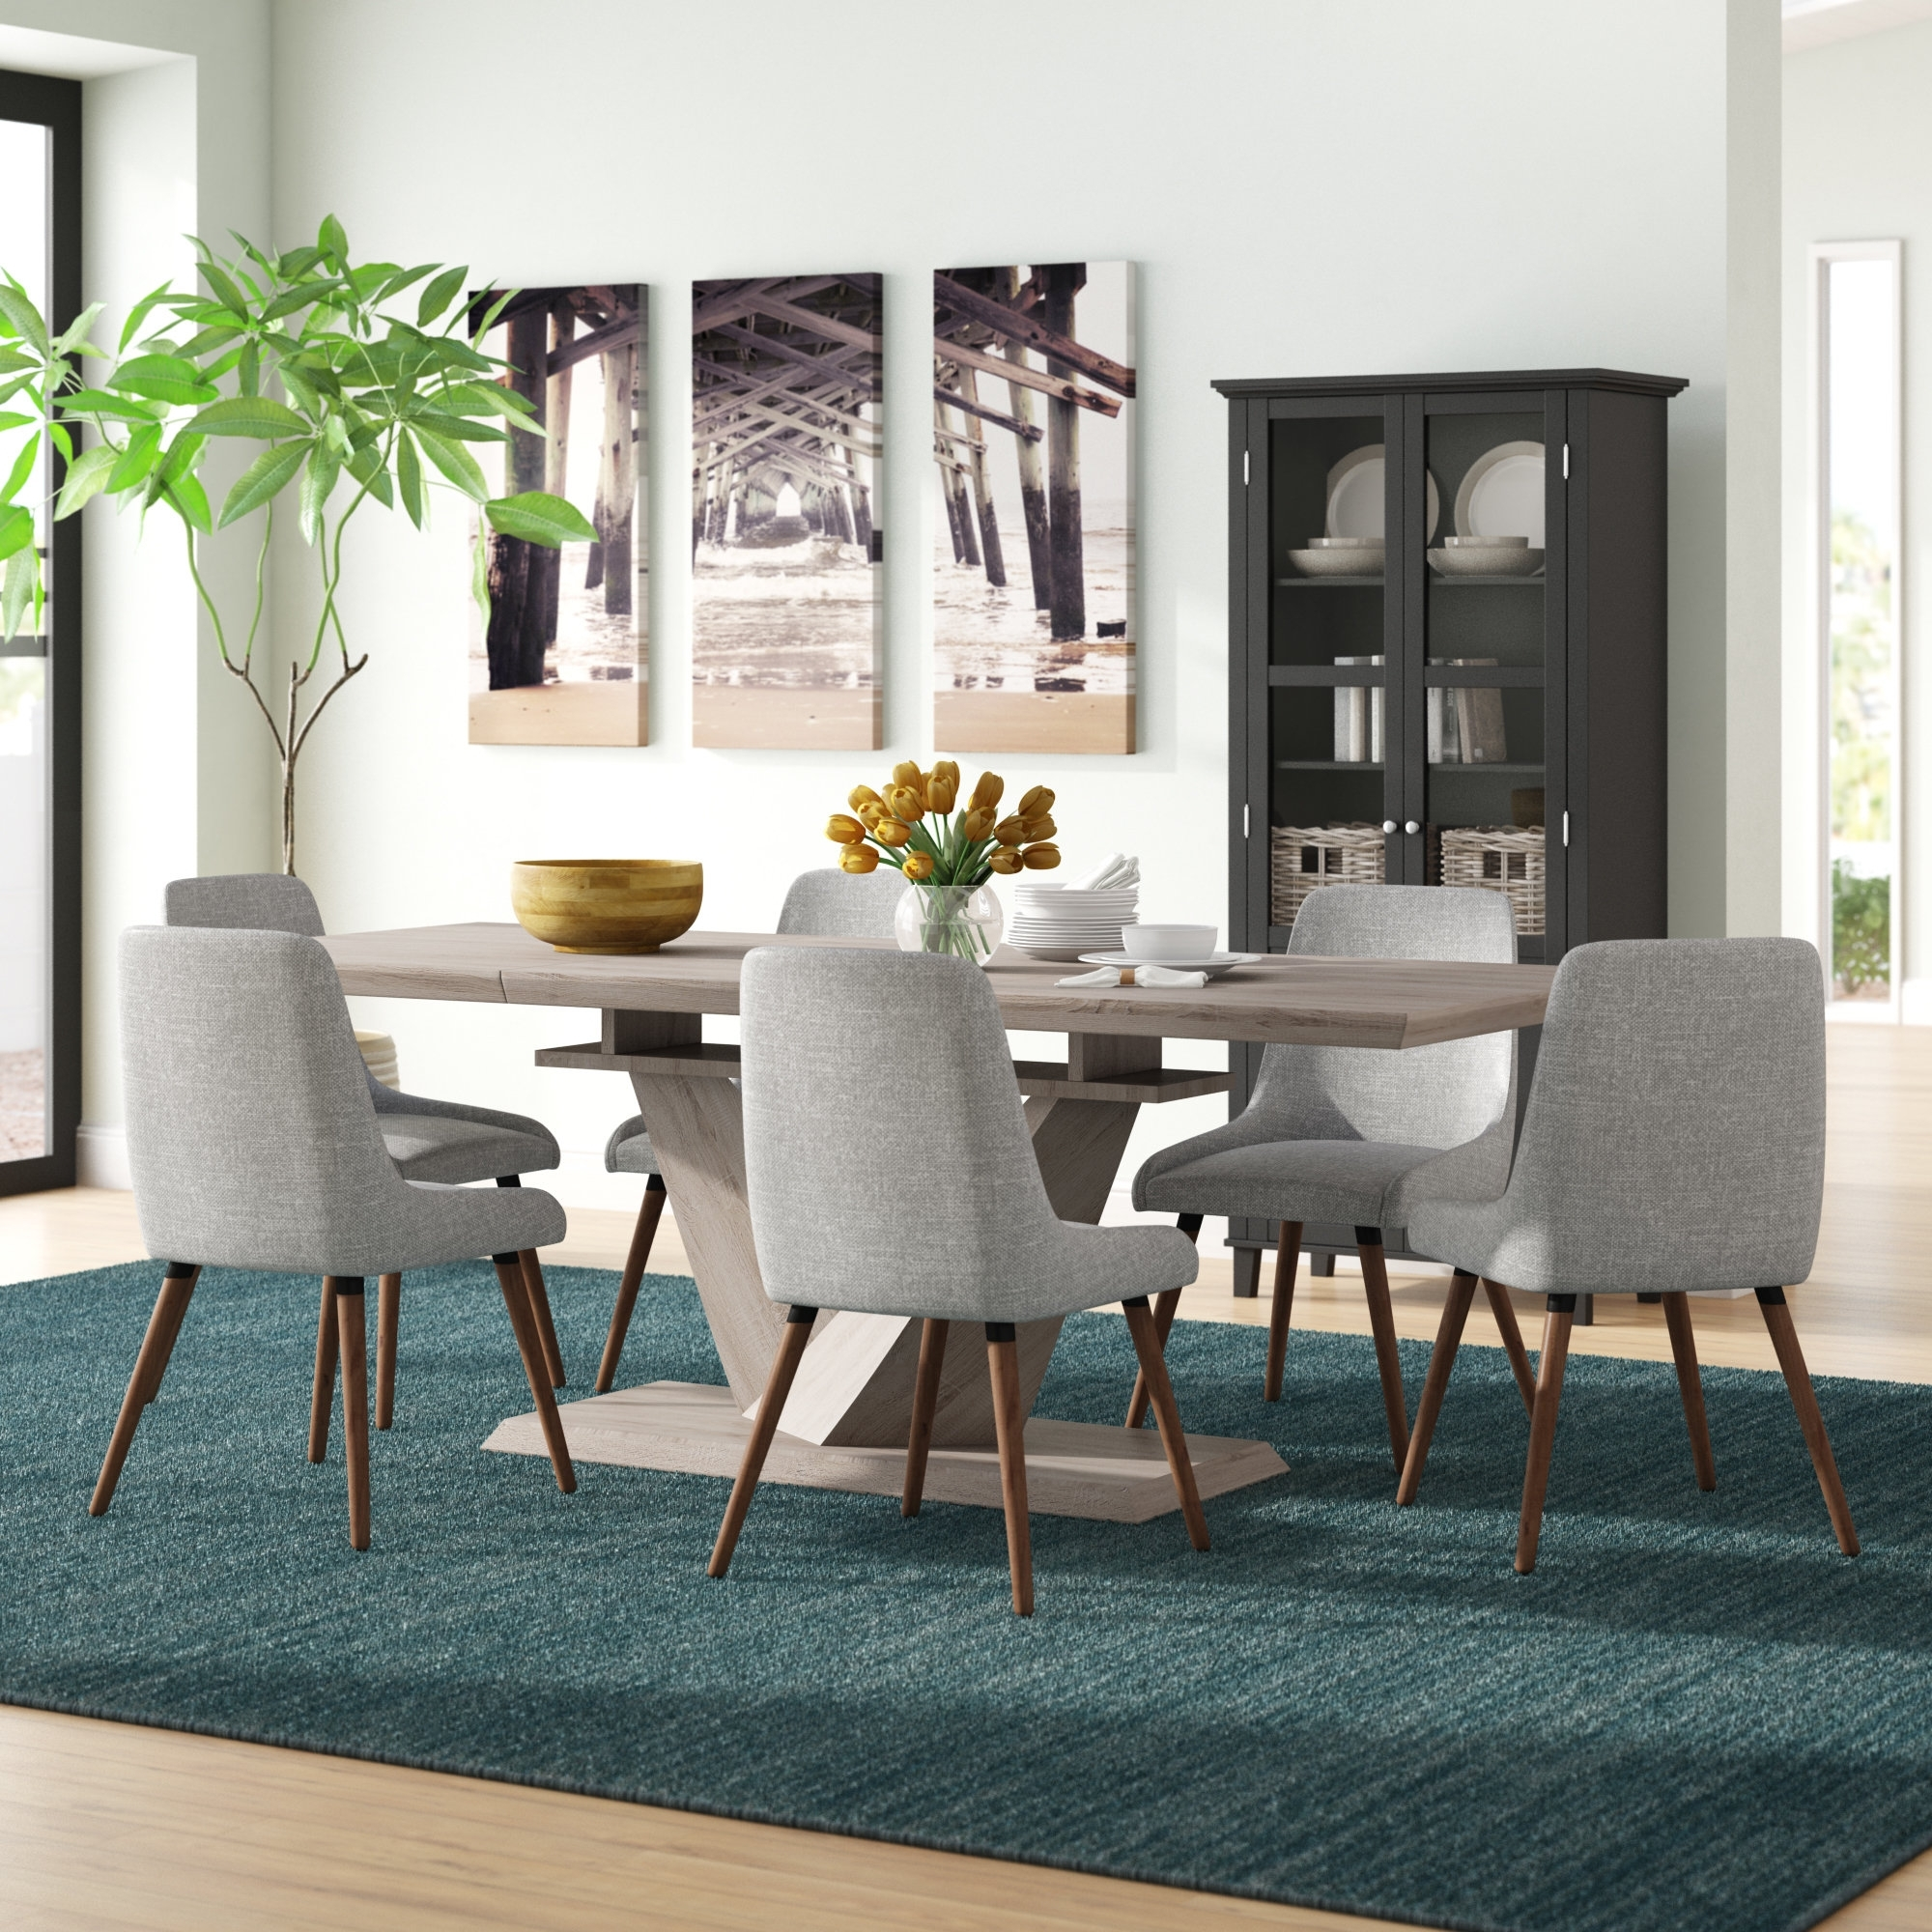 Simmers 7 Piece Dining Set (View 15 of 25)